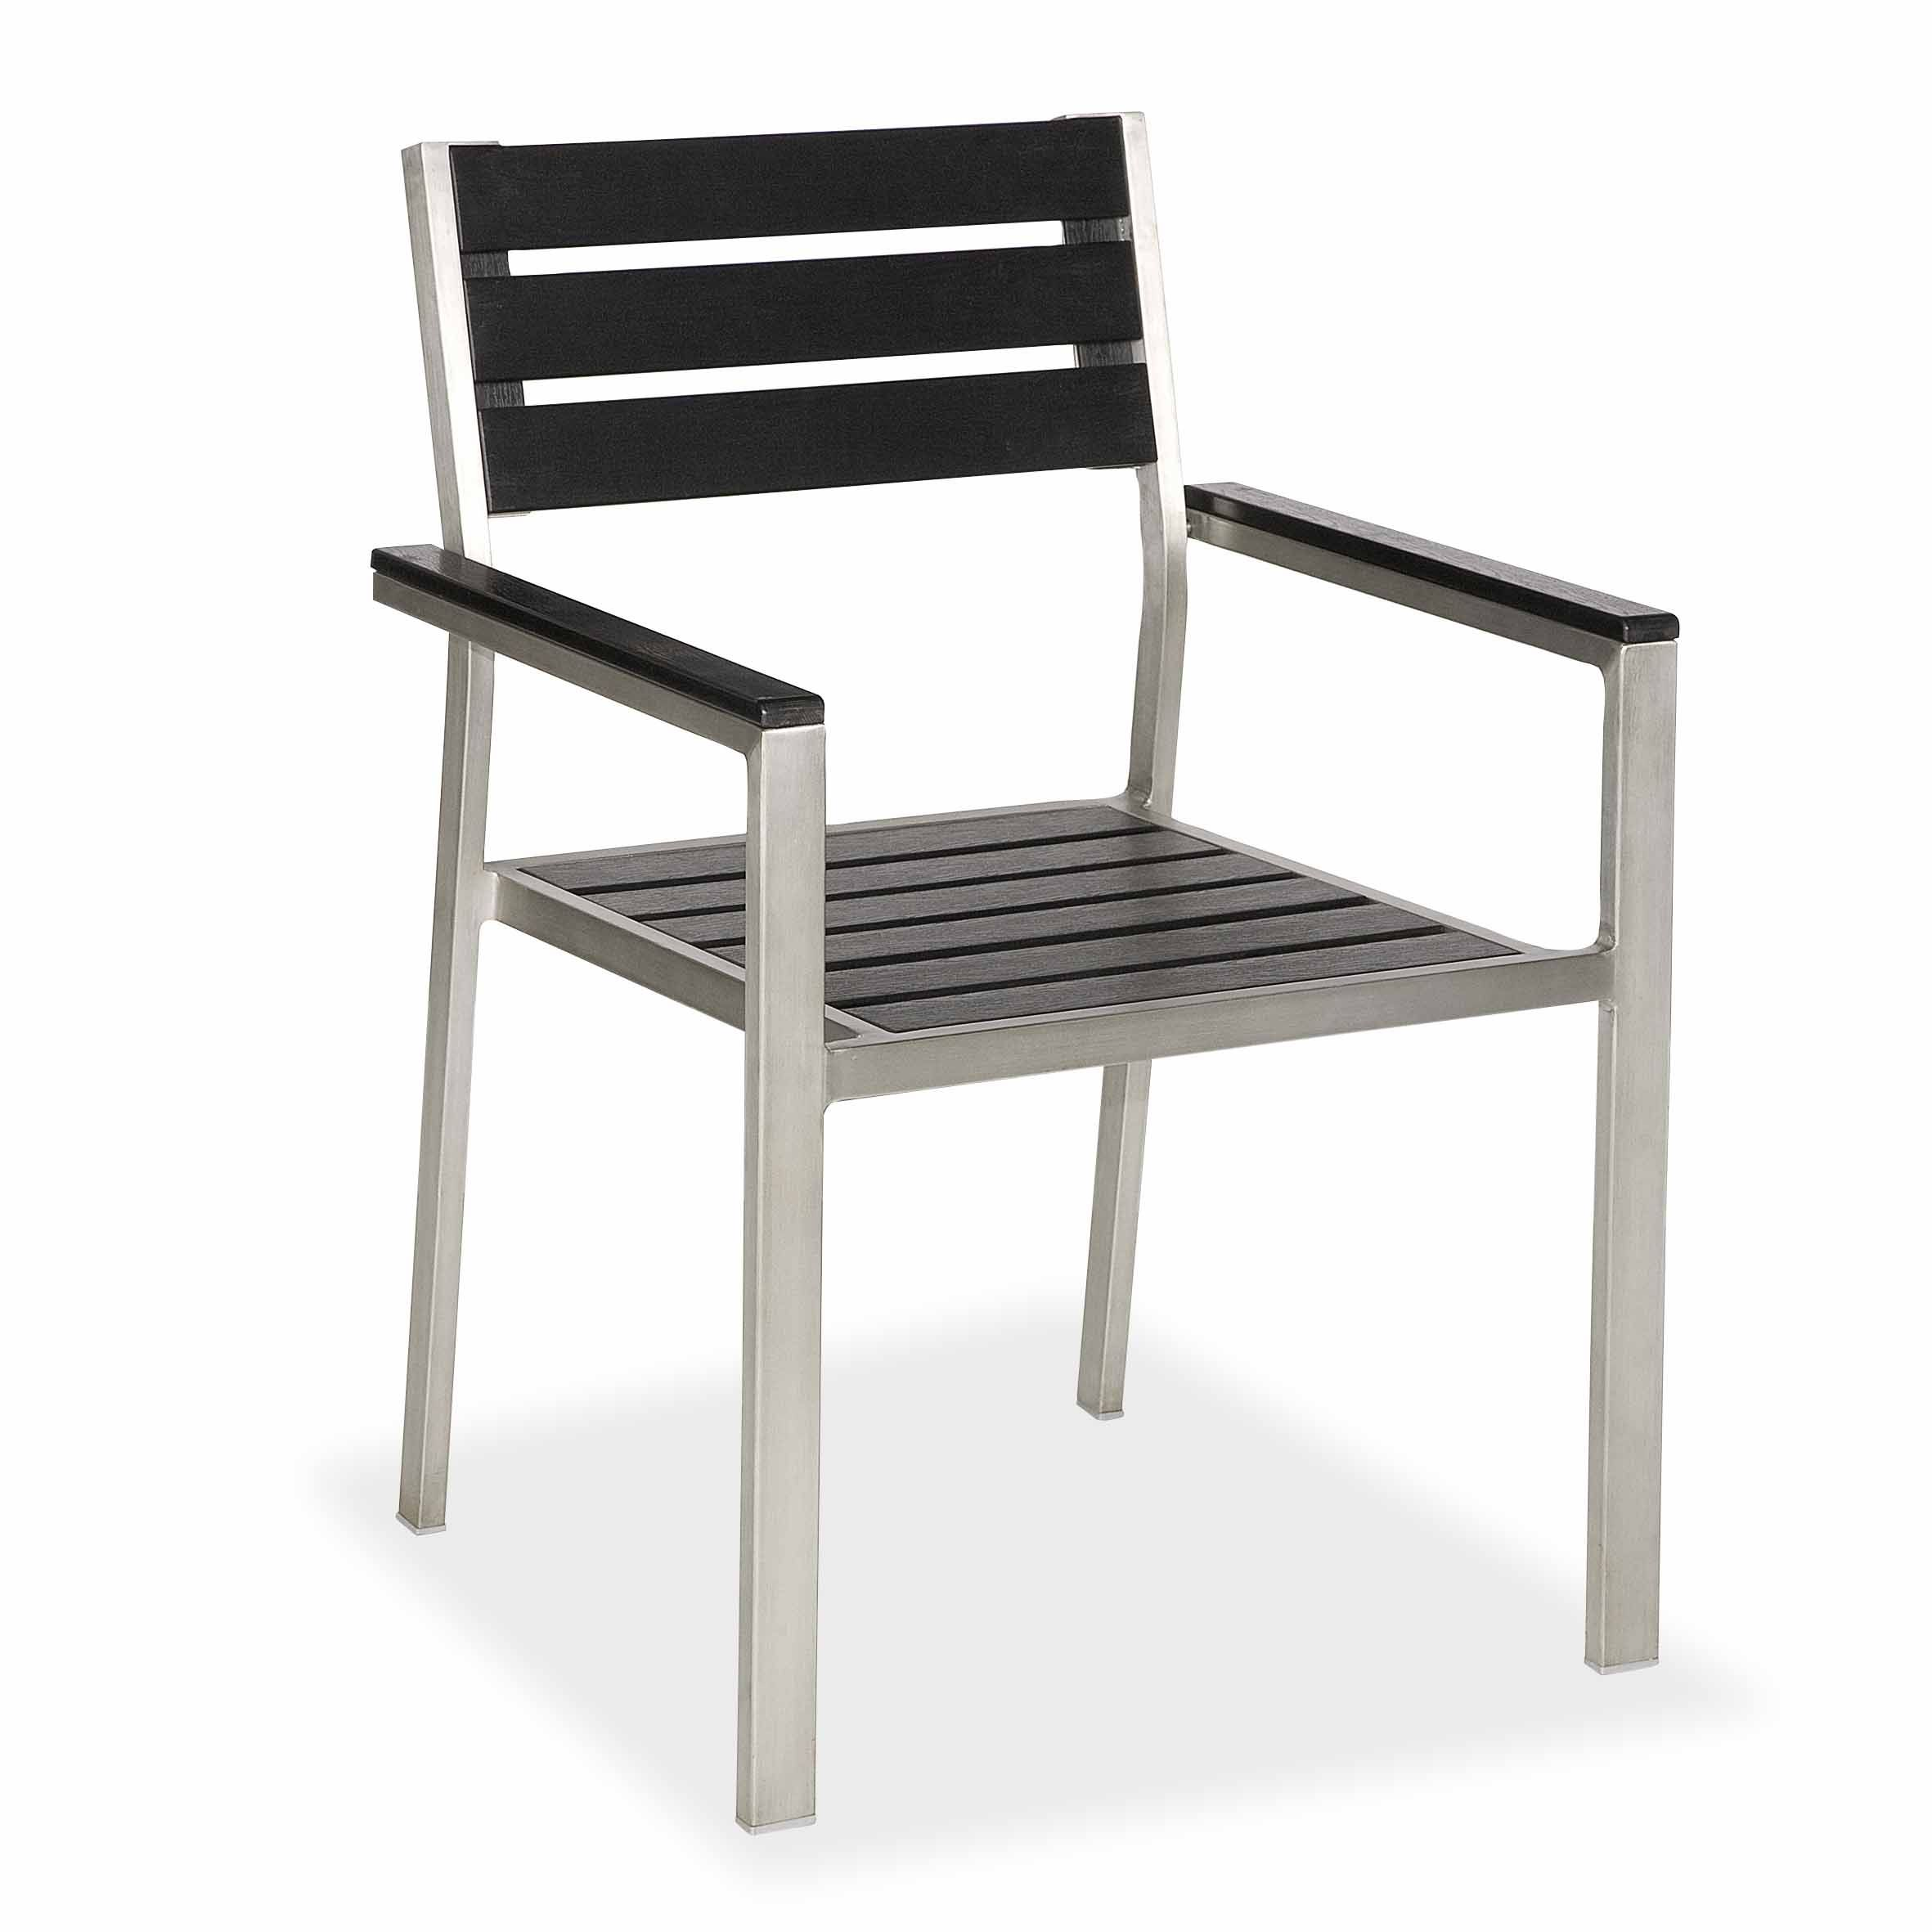 Superb CH C051 Stainless Steel Frame Plastic Wood Top Outdoor Chair